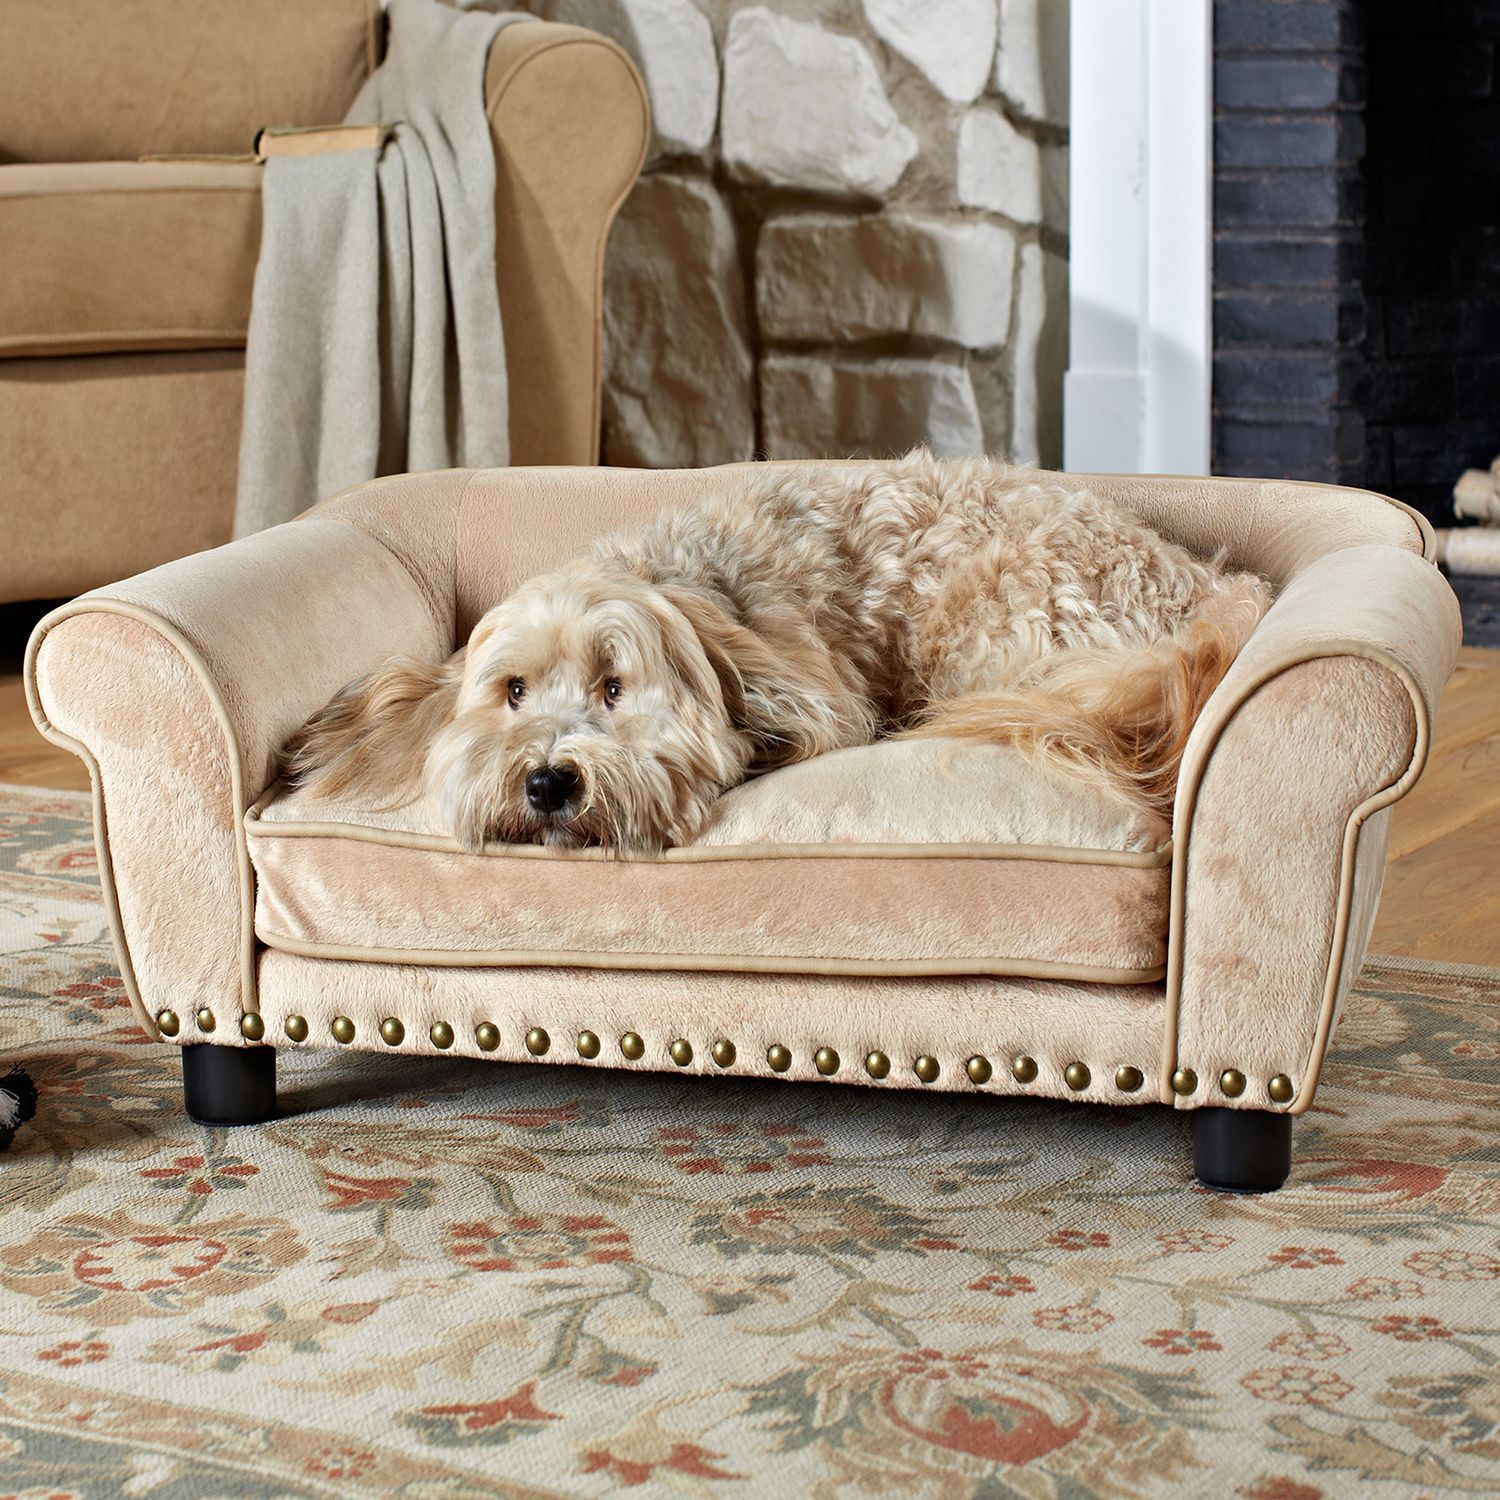 Enchanted Home Pet furniture eases your pet into a luxurious cushion that  engulfs them in complete